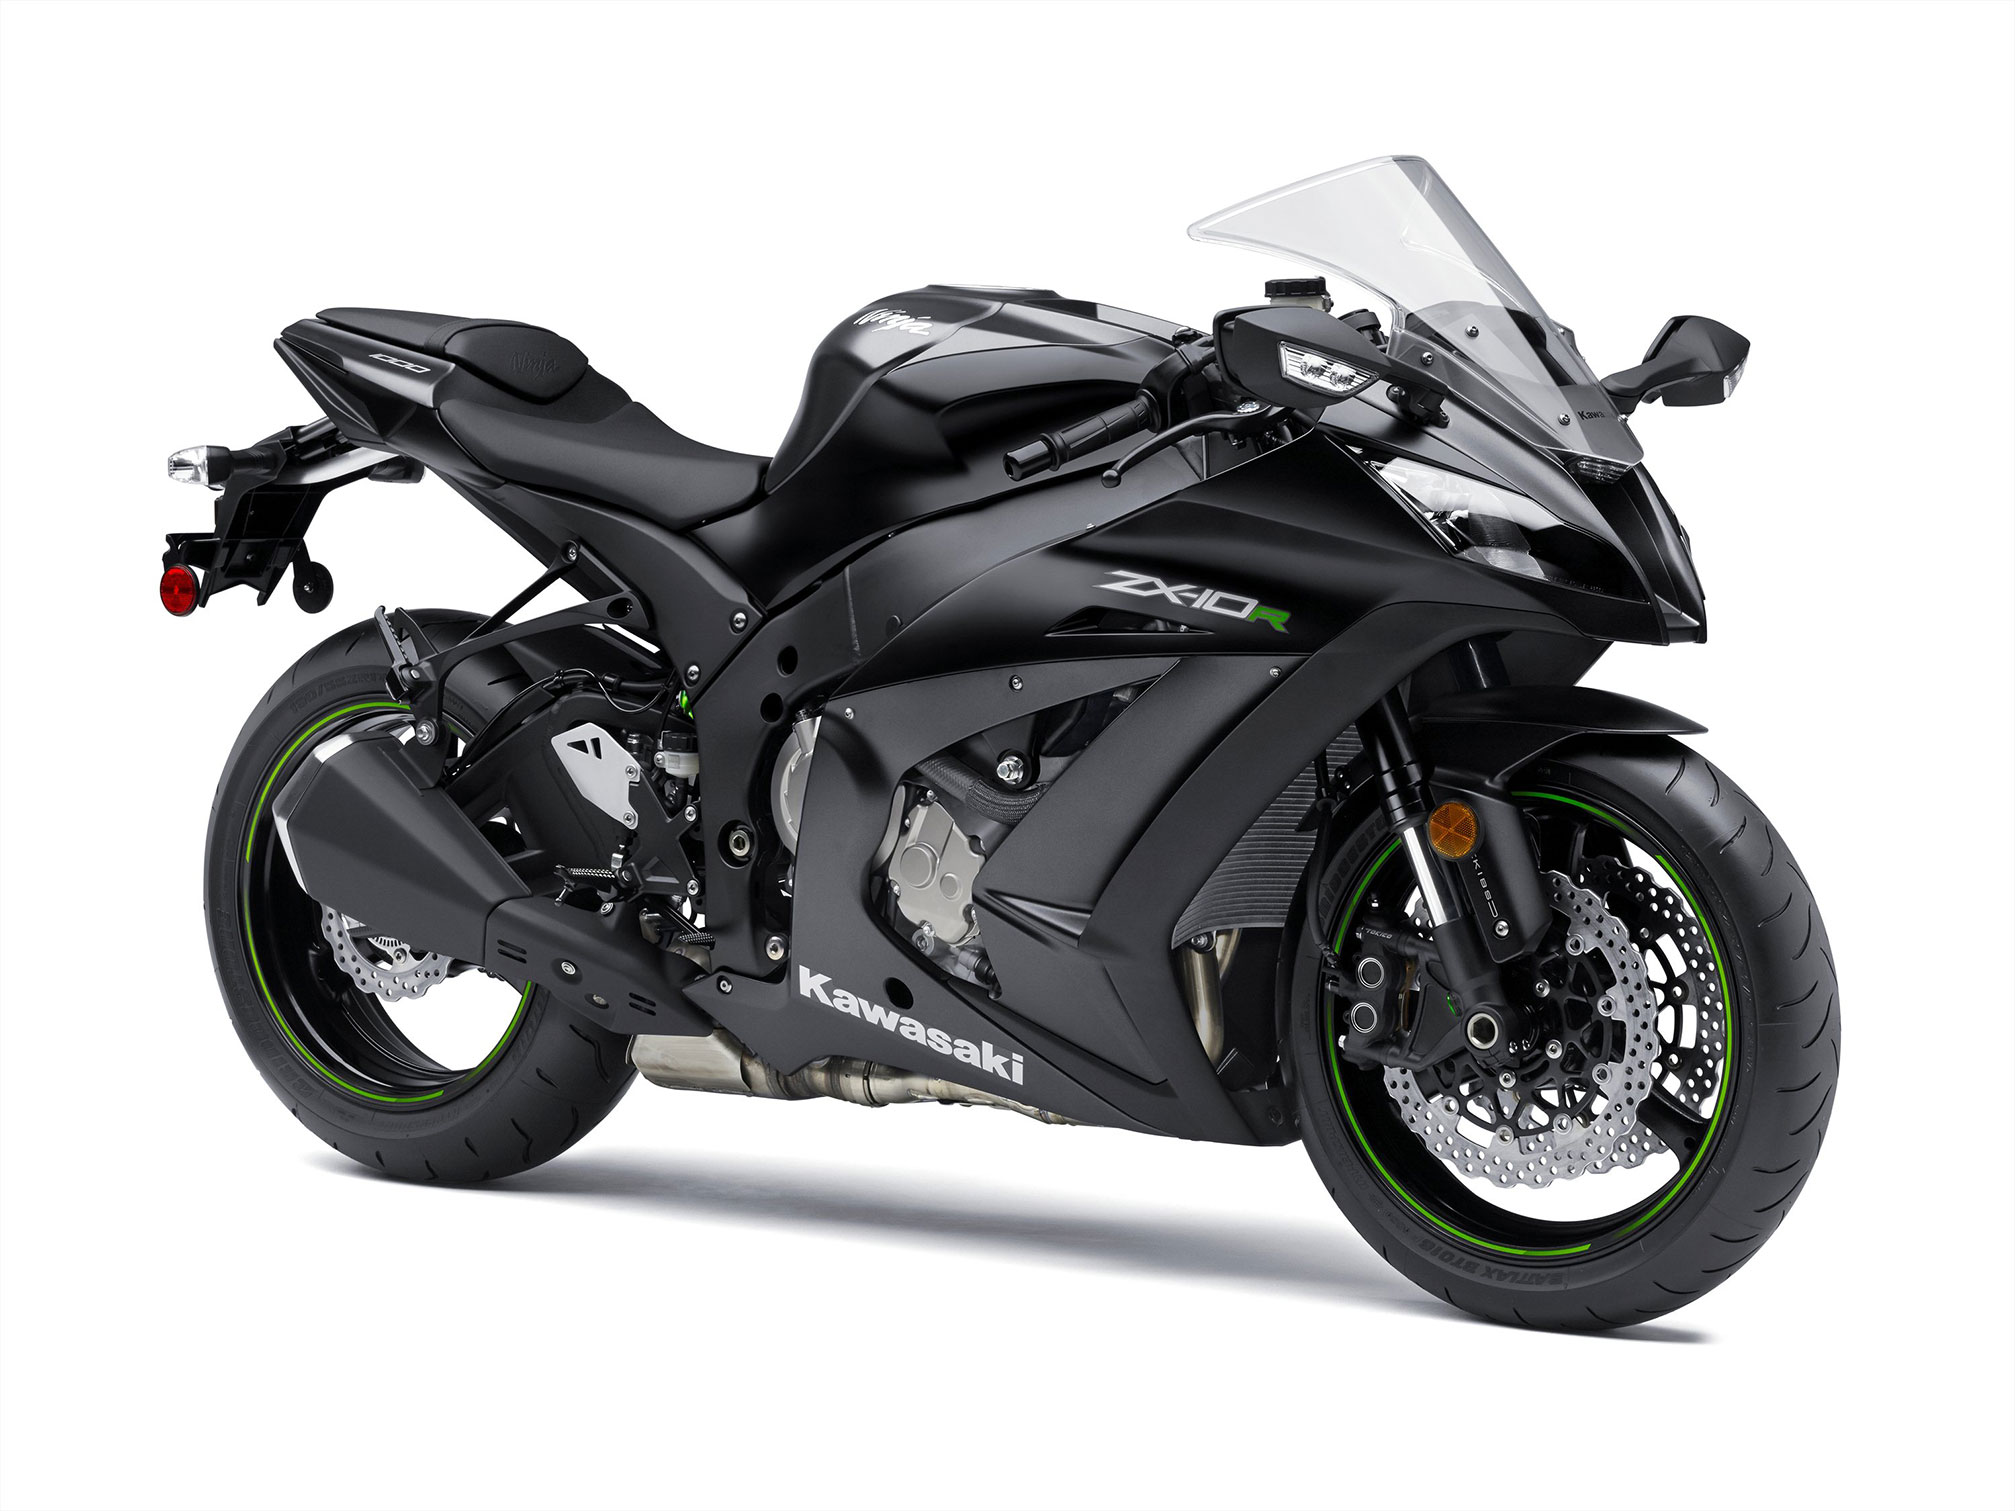 kawasaki kawasaki ninja zx 10r specs 2014 2015 autoevolution. Black Bedroom Furniture Sets. Home Design Ideas